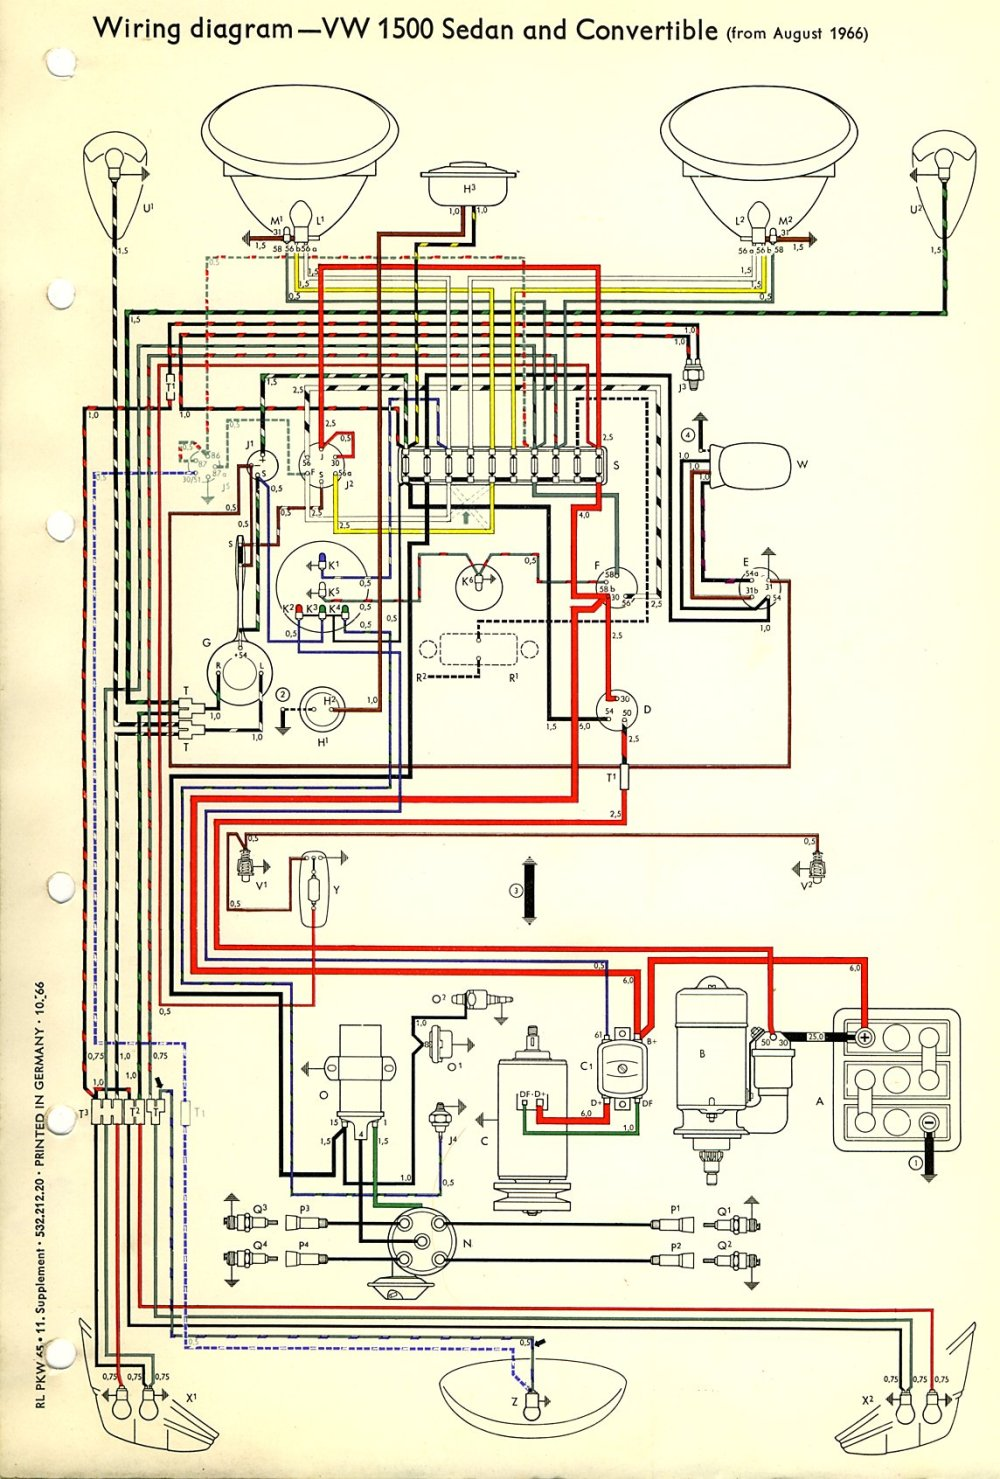 medium resolution of 1967 beetle wiring diagram thegoldenbug com vw generator wiring a light 67 vw wiring diagram